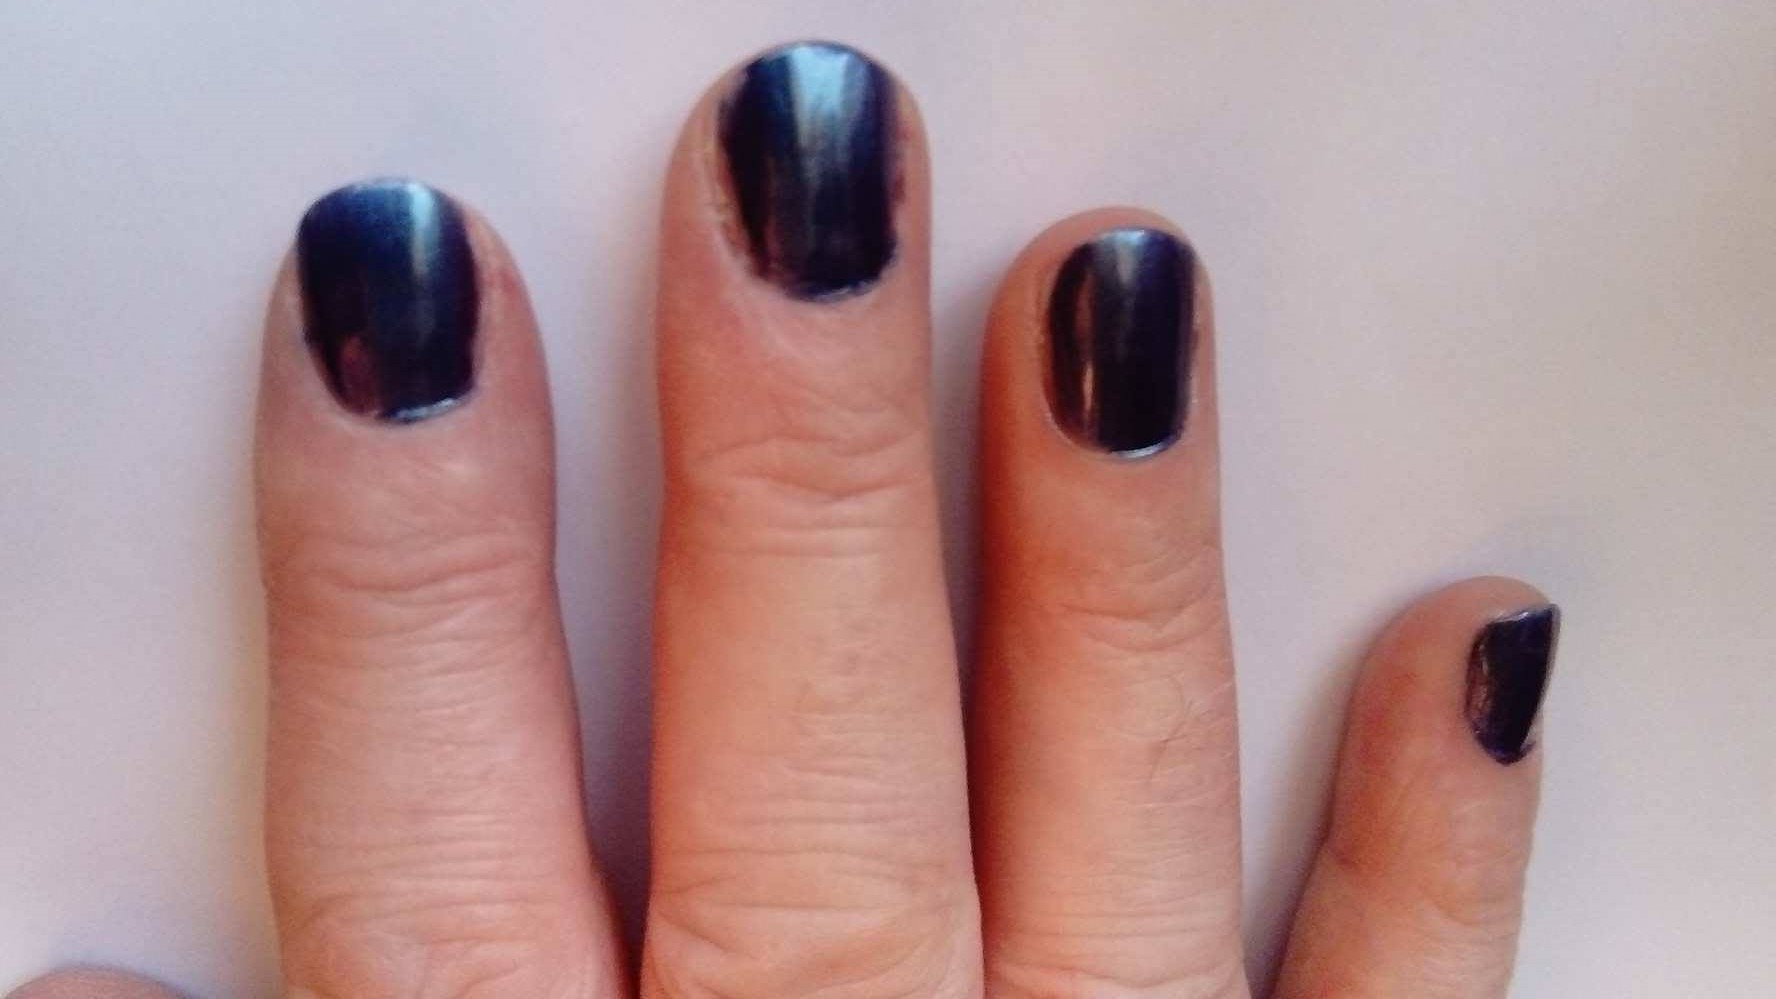 Review: Essence\'s holographic nail polish range is out of this world